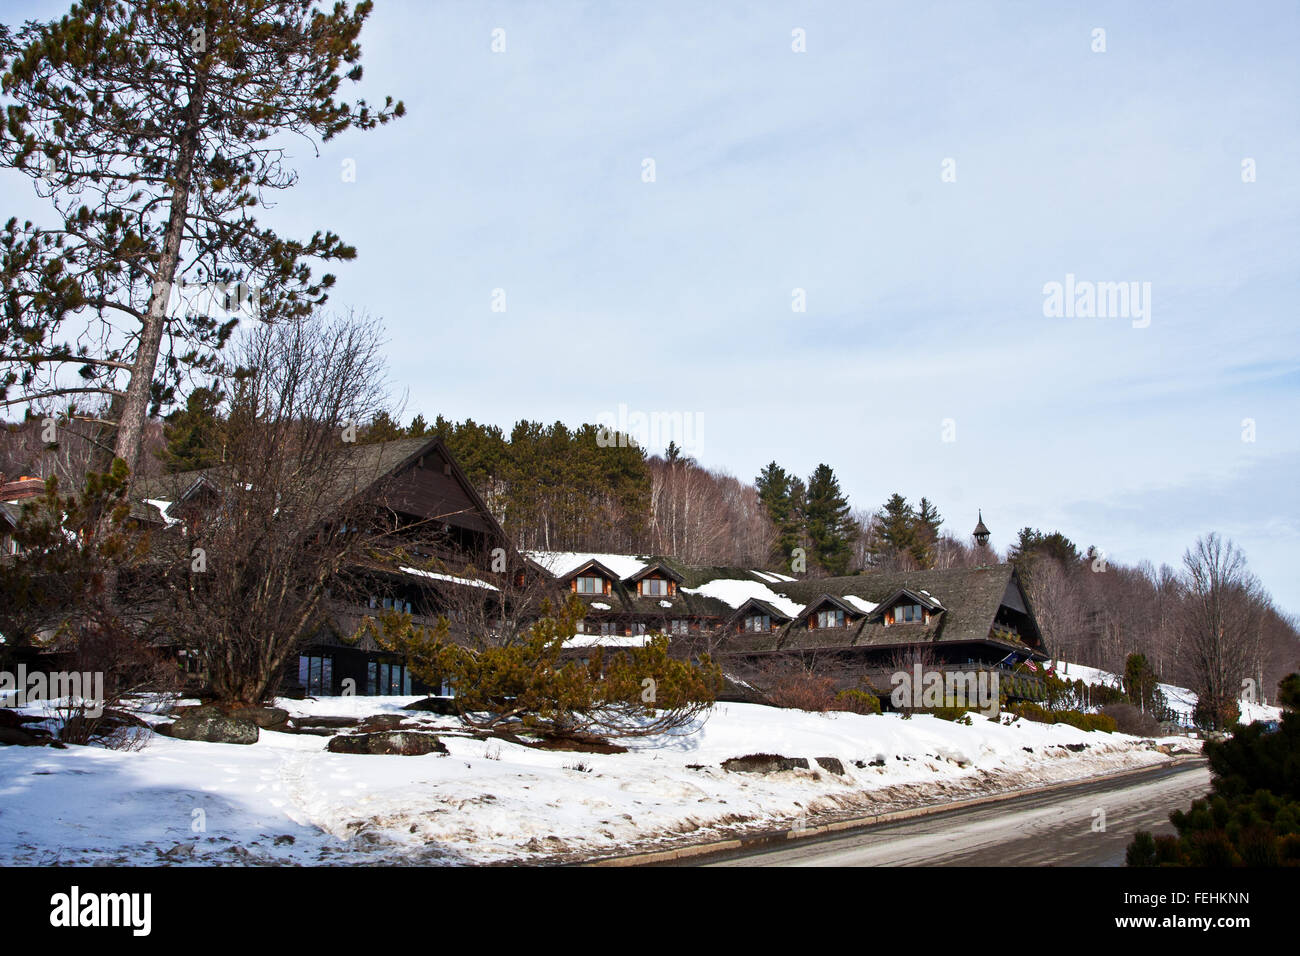 The Von Trapp Family Lodge in Stowe Vermont, USA, The Trapp Family Lodge - Stock Image